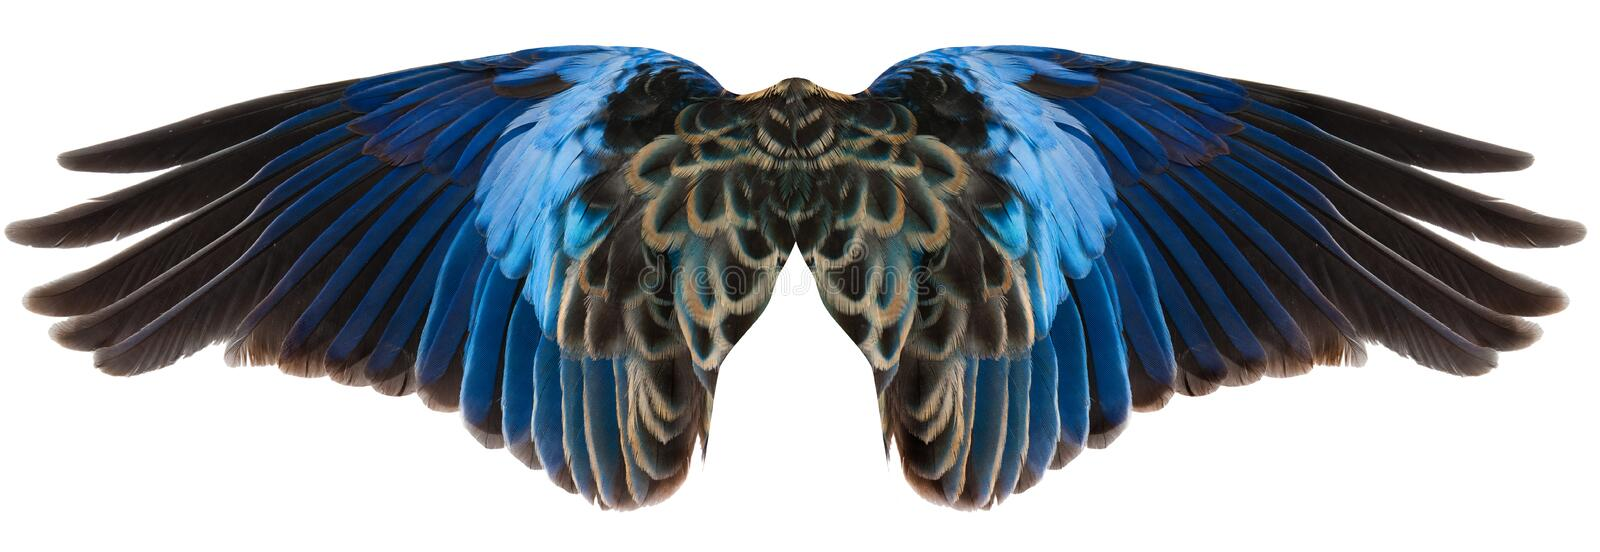 Blue Bird Wings Isolated royalty free stock image